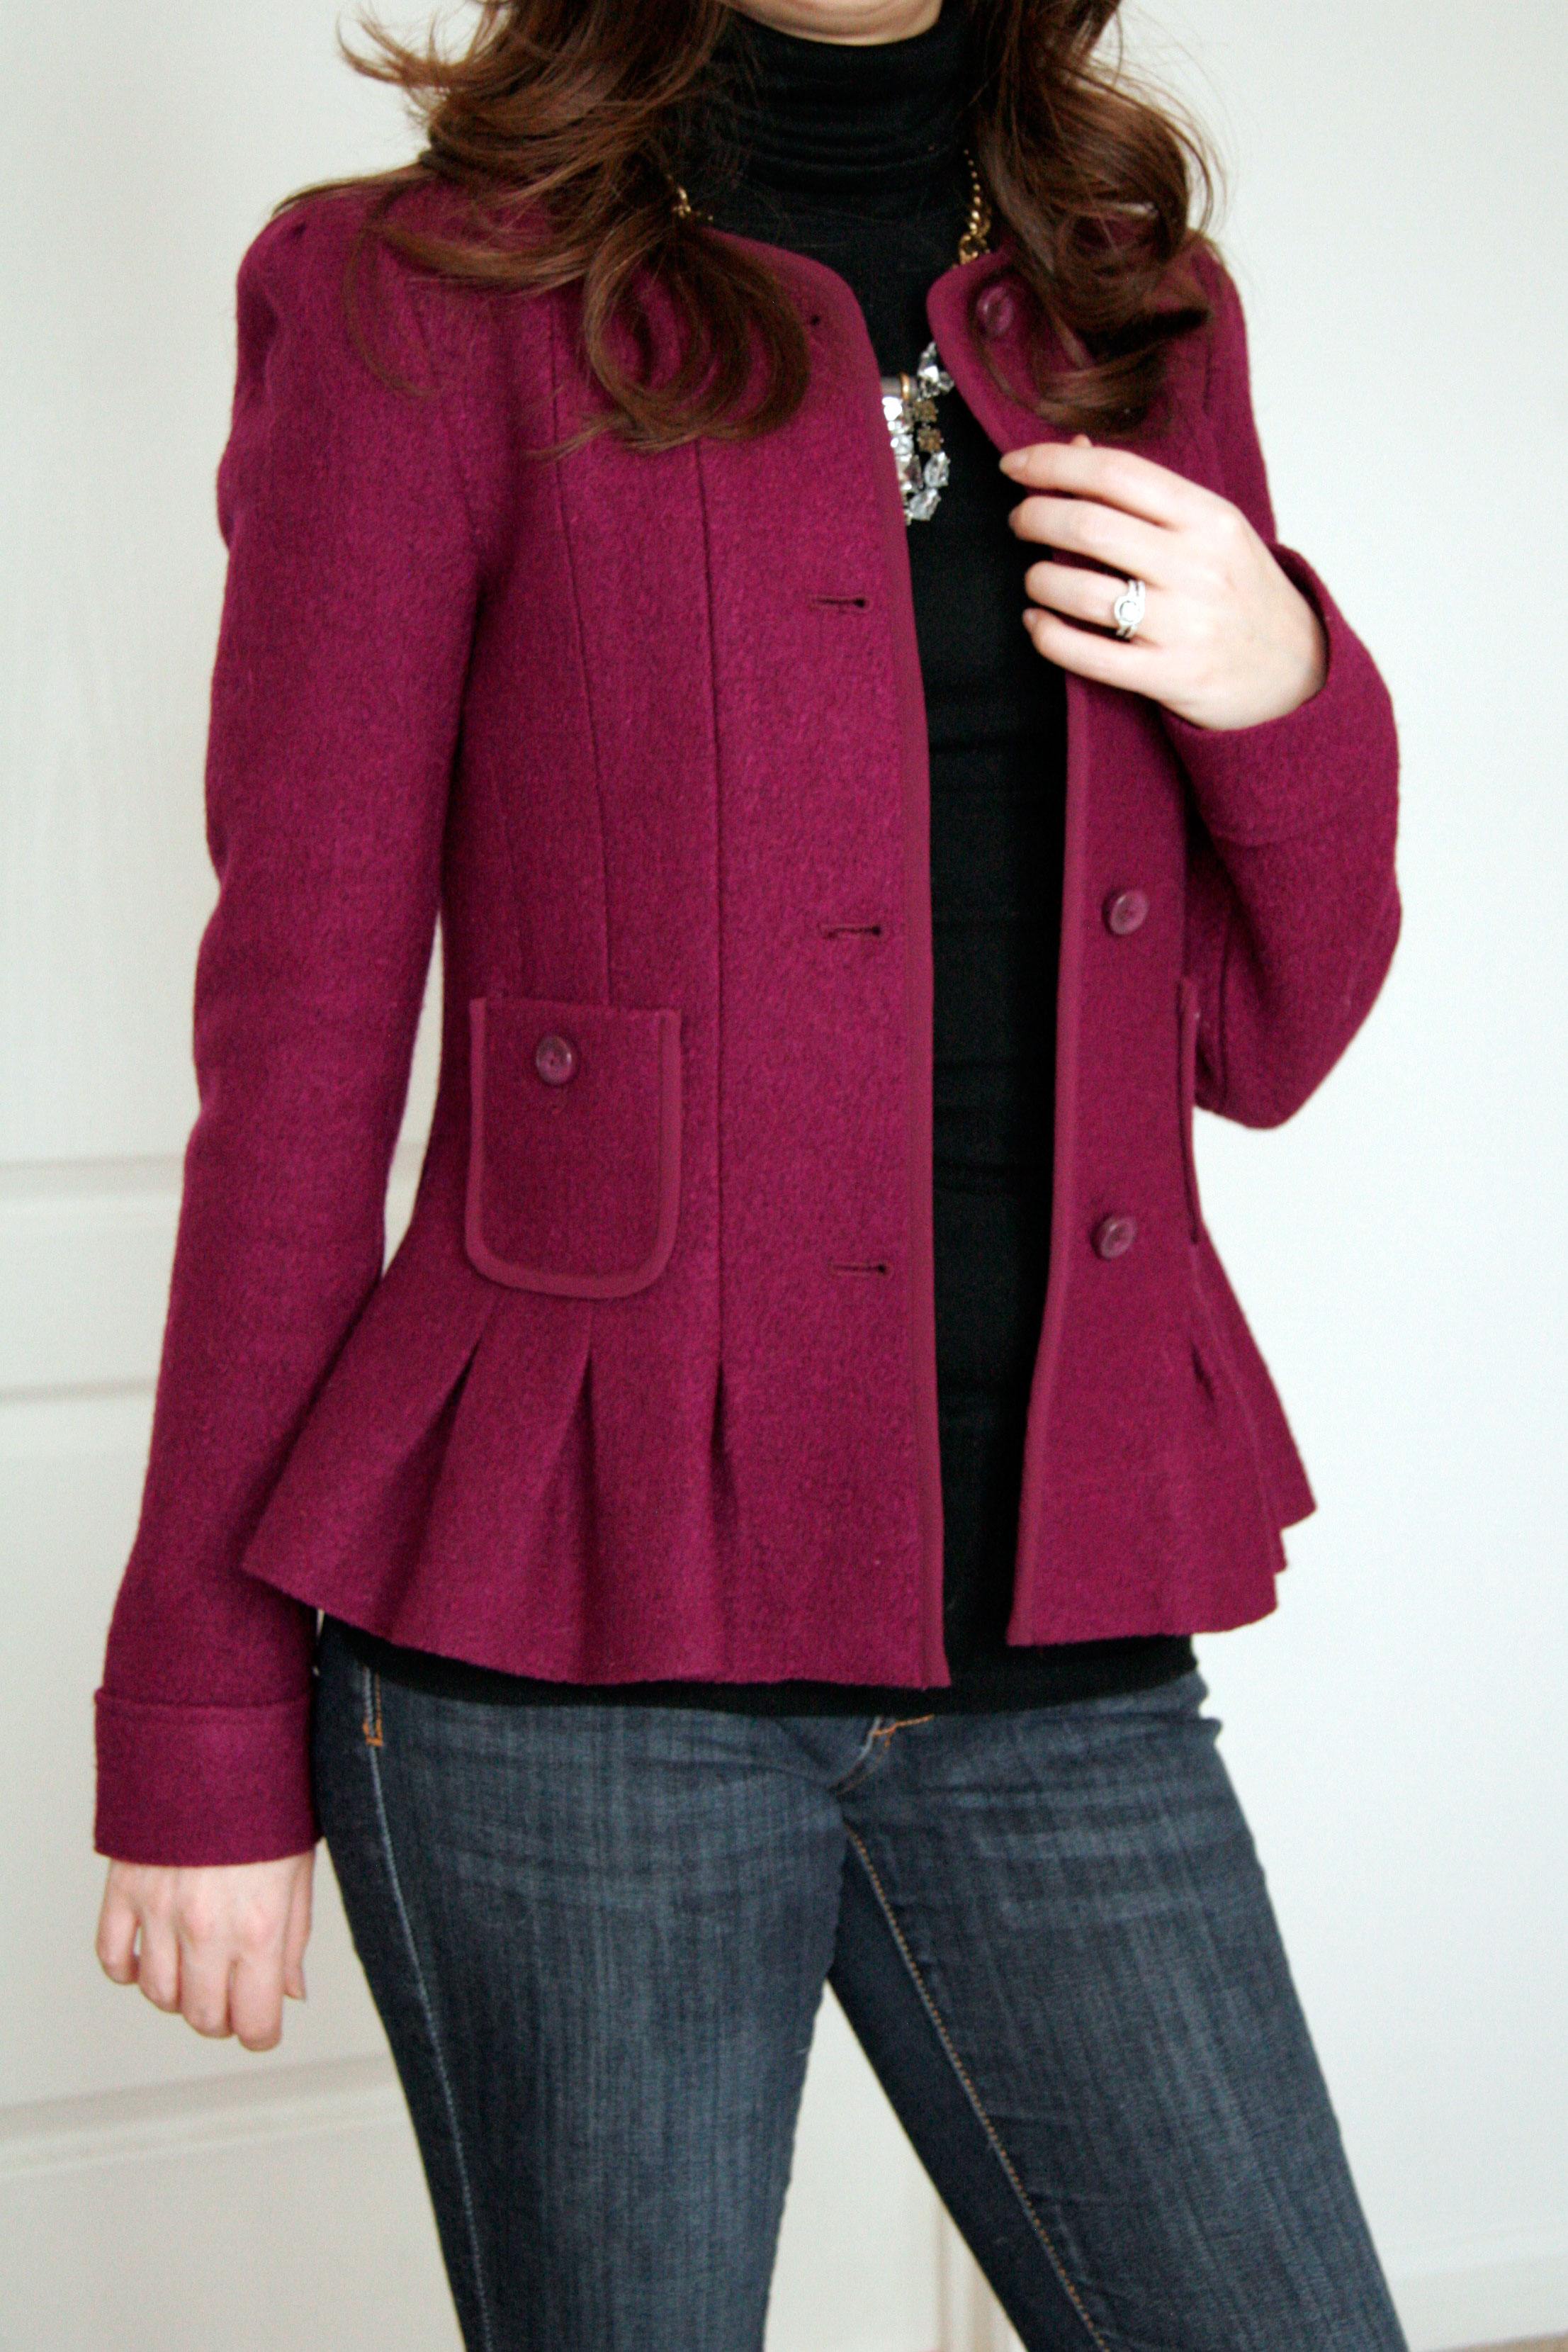 styling my new favorite anthropologie peplum jacket all